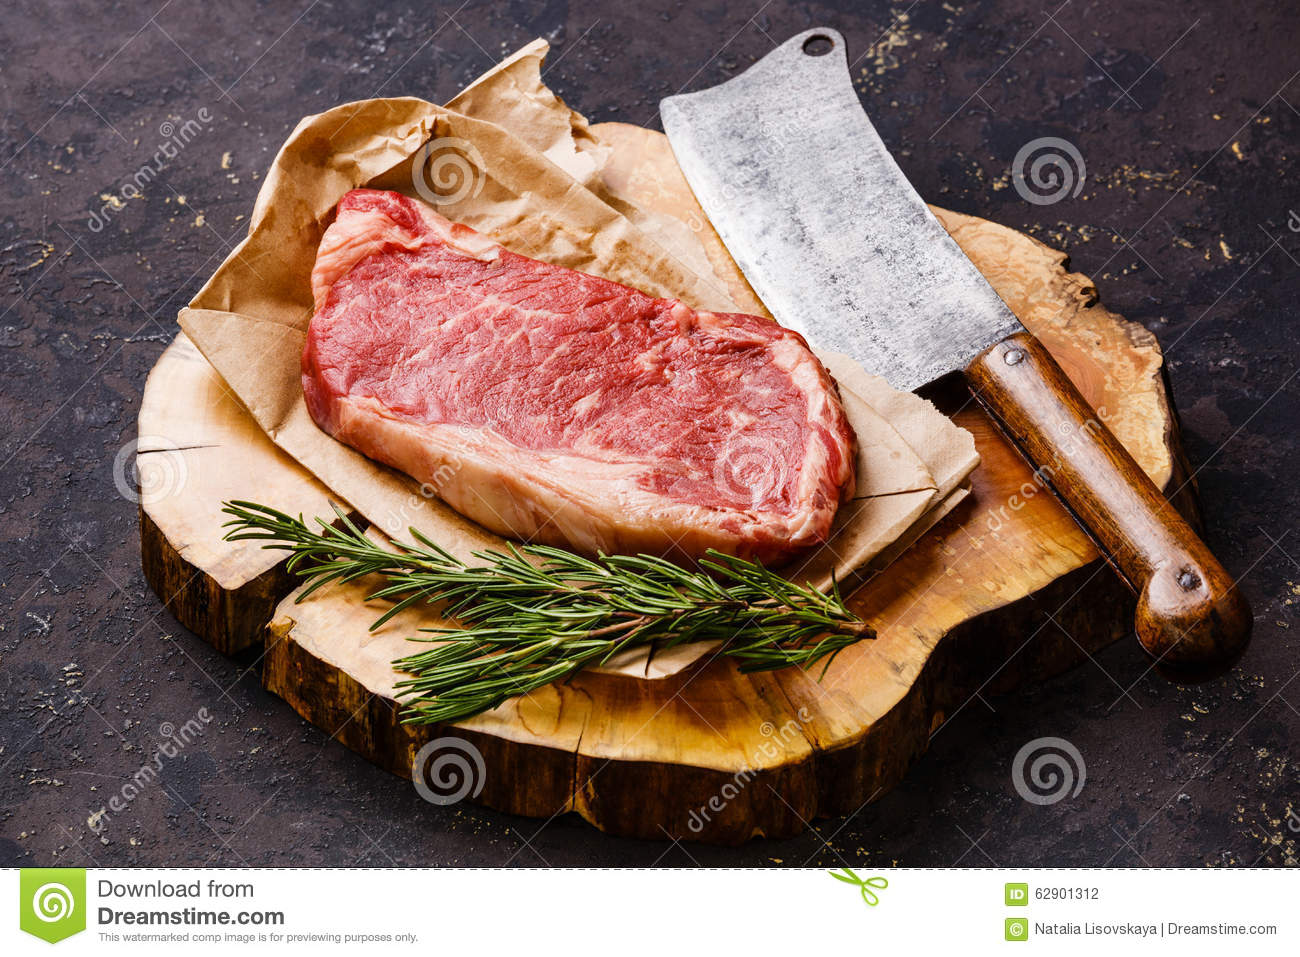 Raw meat Striploin steak and meat cleaver